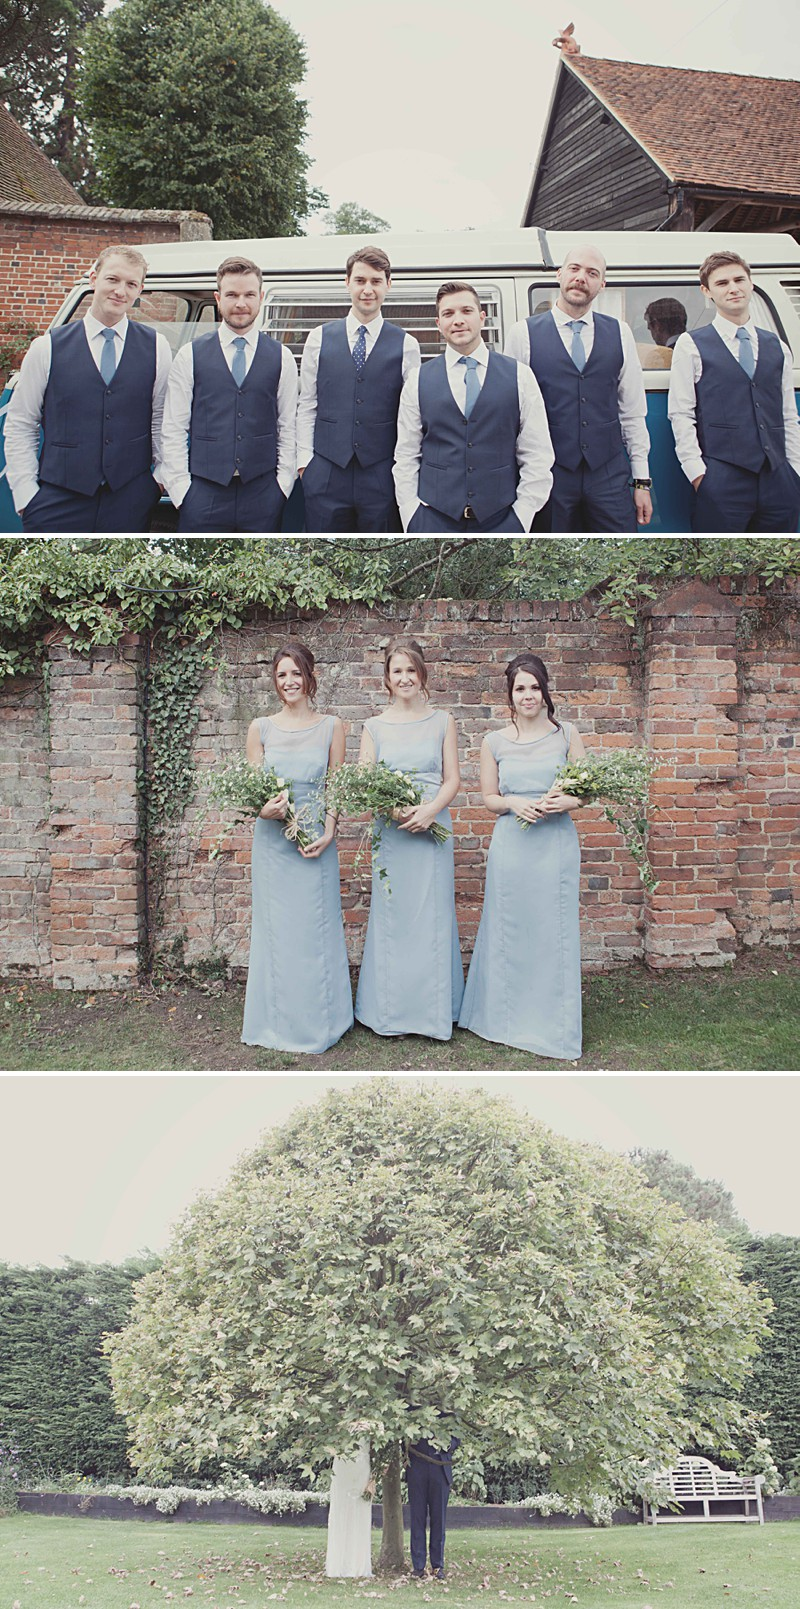 A Rustic Wedding At Gaynes Park With A Jenny Packham 'Eden' Dress And Dusky Blue Bridesmaids Dresses With Foliage Bouquets By Philippa James Photography._0001